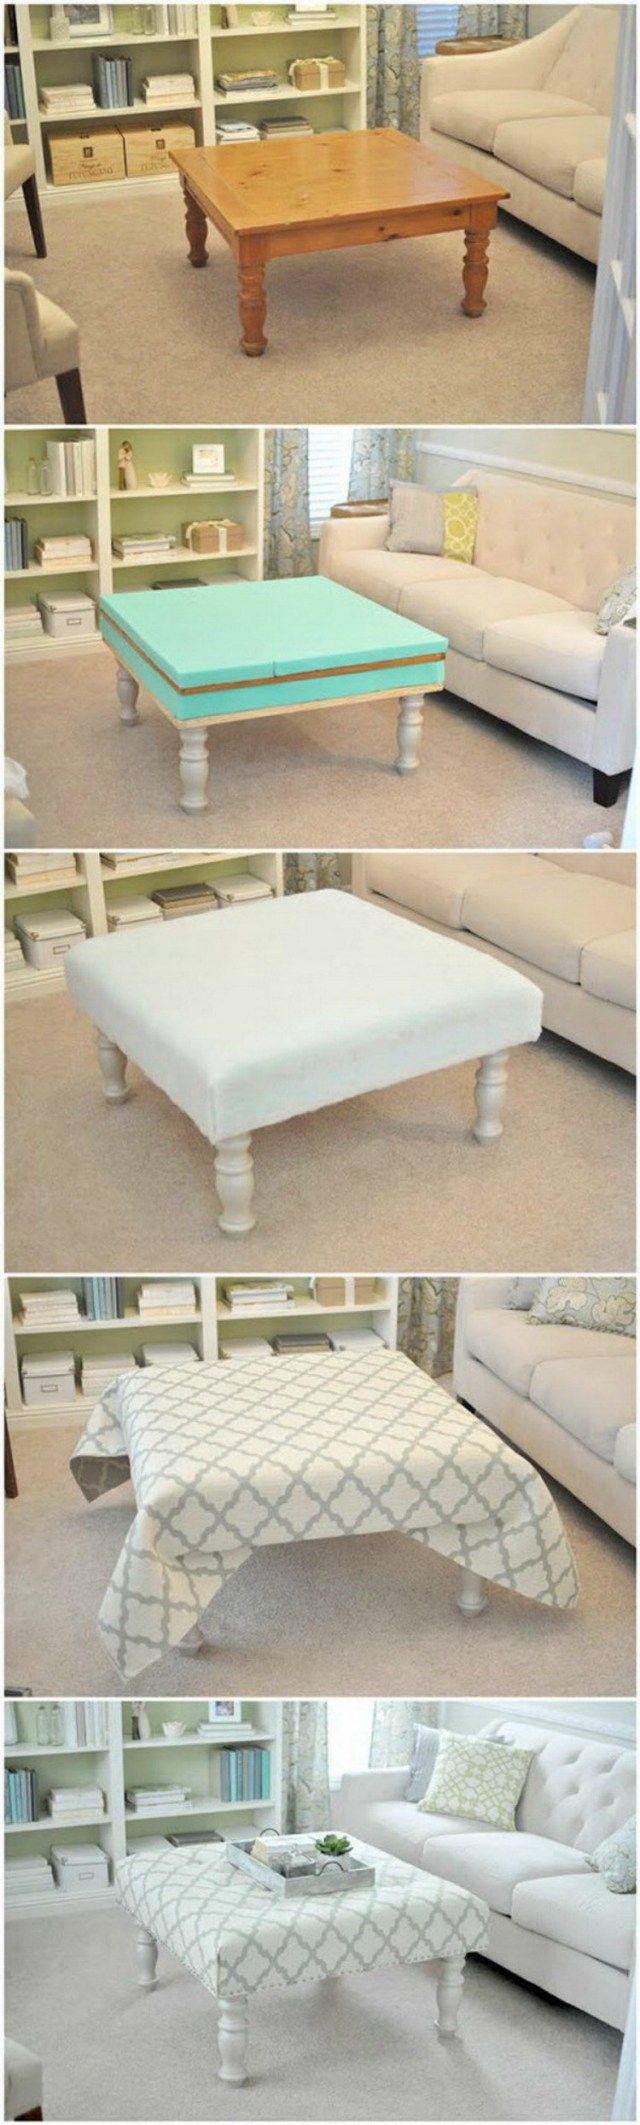 15 easy diy hacks to give your furniture new life and new purpose 15 easy diy hacks to give your furniture new life and new purpose coffee table solutioingenieria Gallery